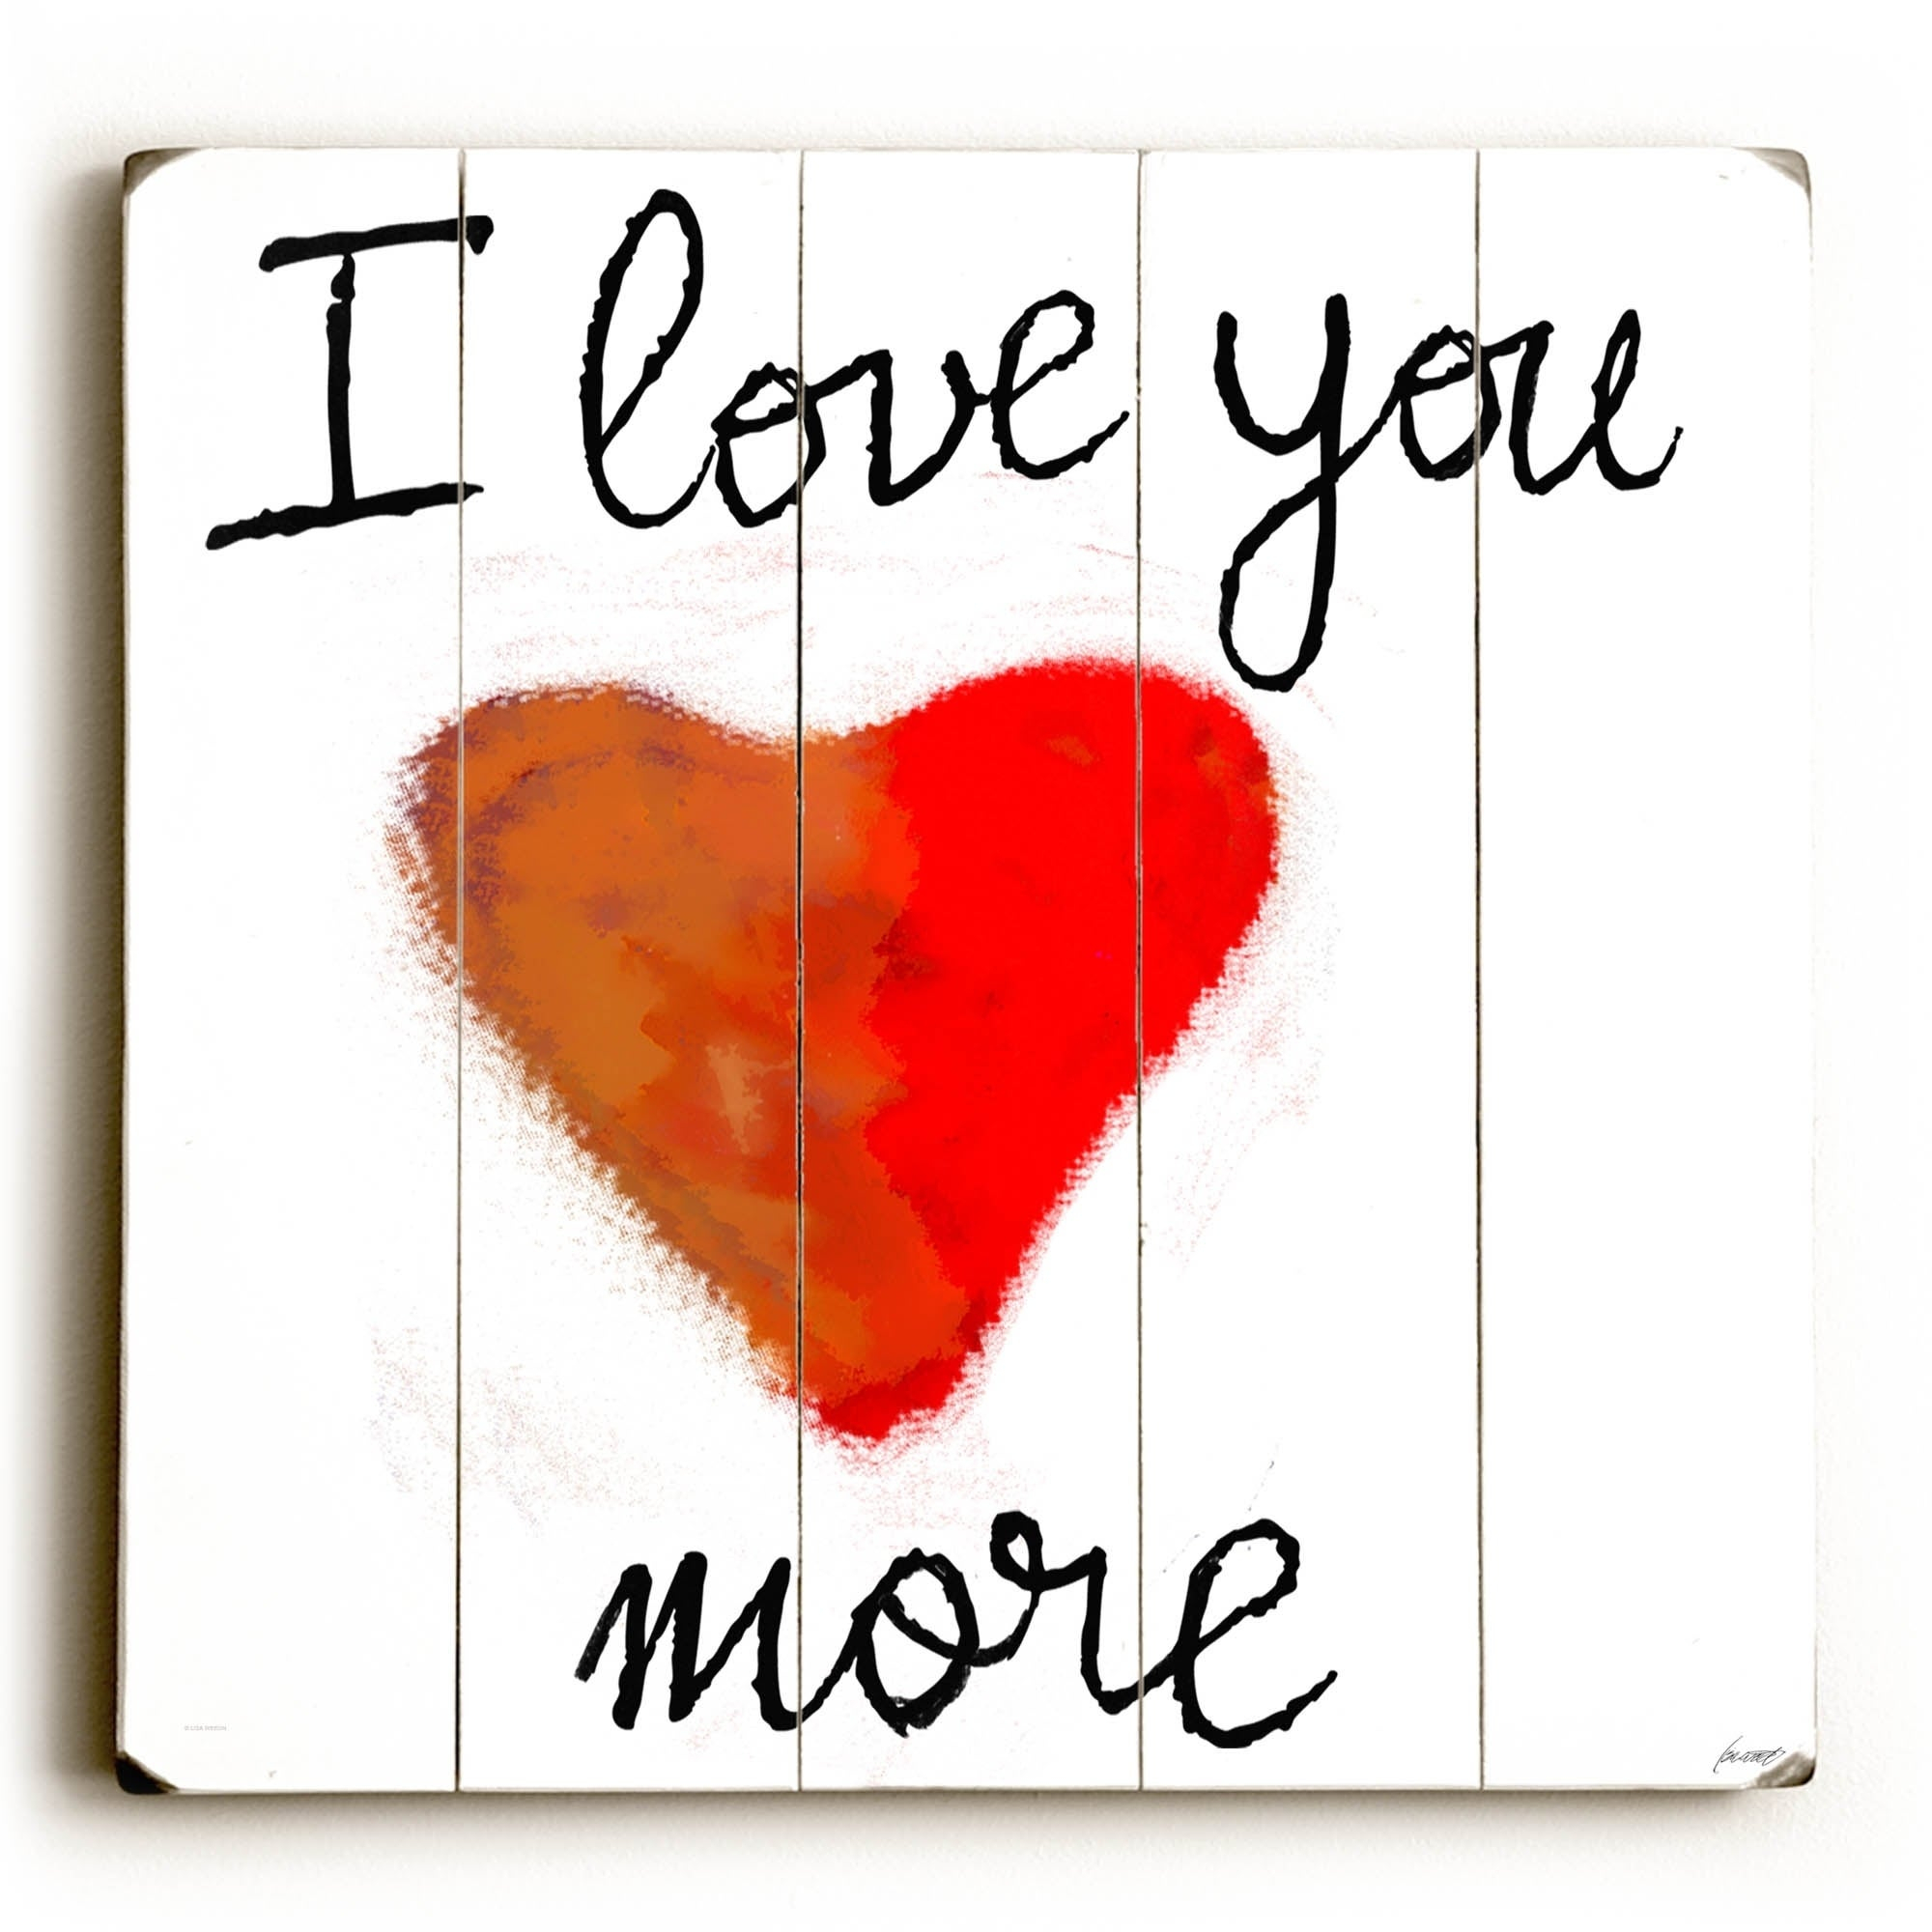 I Love You More - Planked Wood Wall Decorlisa Weedn regarding 'love You More' Wood Wall Decor (Image 11 of 30)